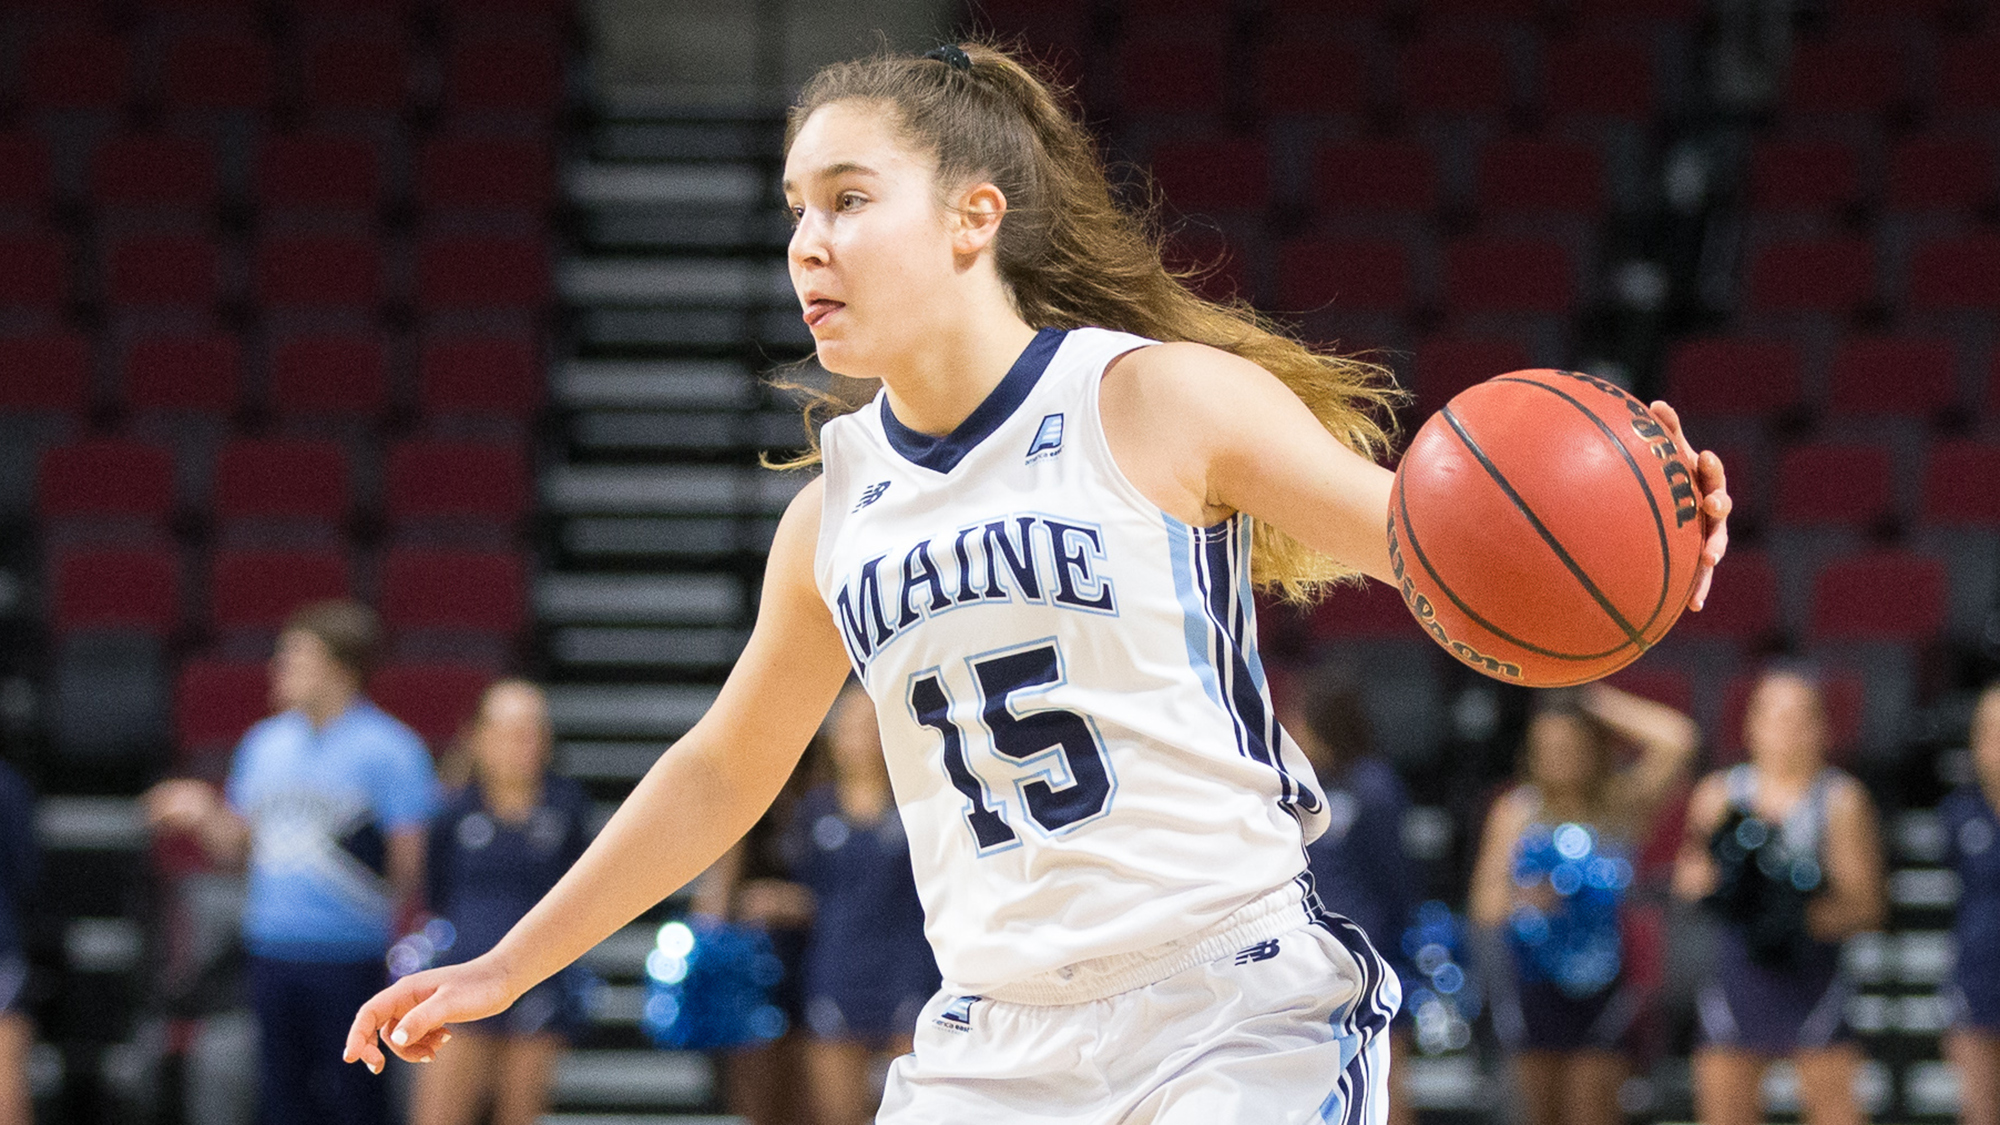 Dor Saar - Women's Basketball - University of Maine Athletics